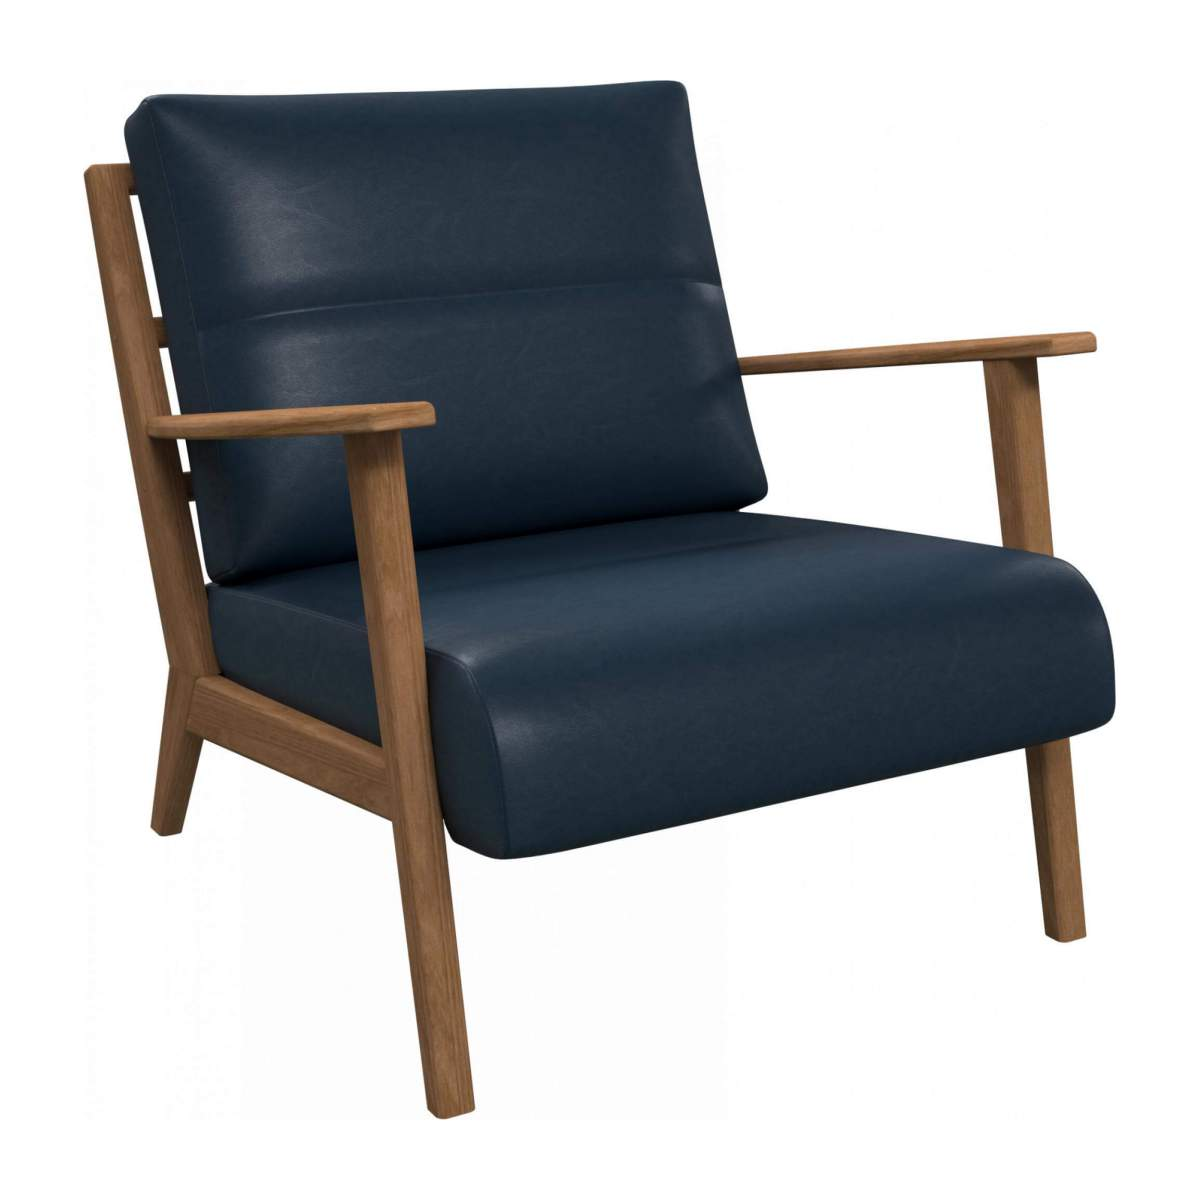 Armchair in Vintage aniline leather, denim blue n°2